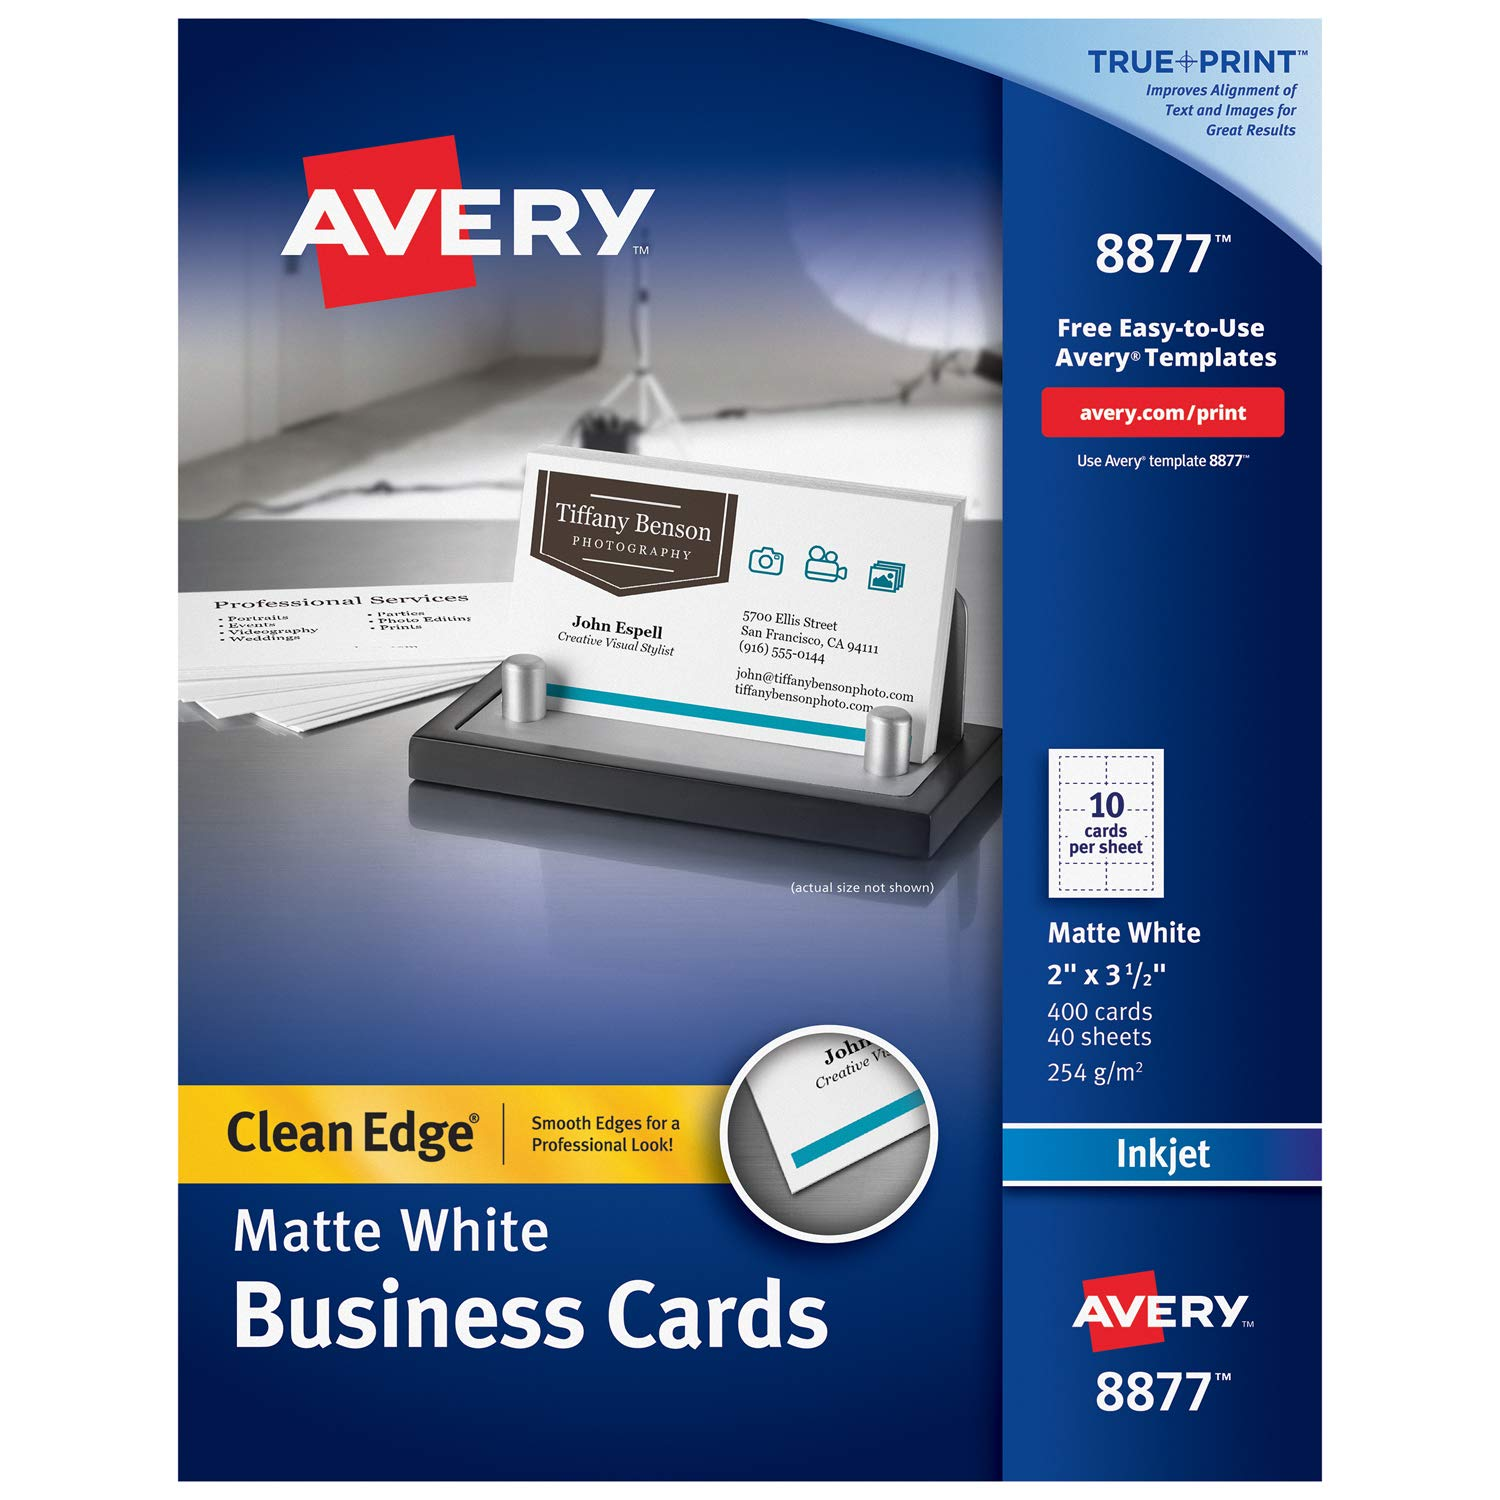 Avery Printable Business Cards, Inkjet Printers, 400 Cards, 2 x 3.5, Clean Edge, Heavyweight (8877), White